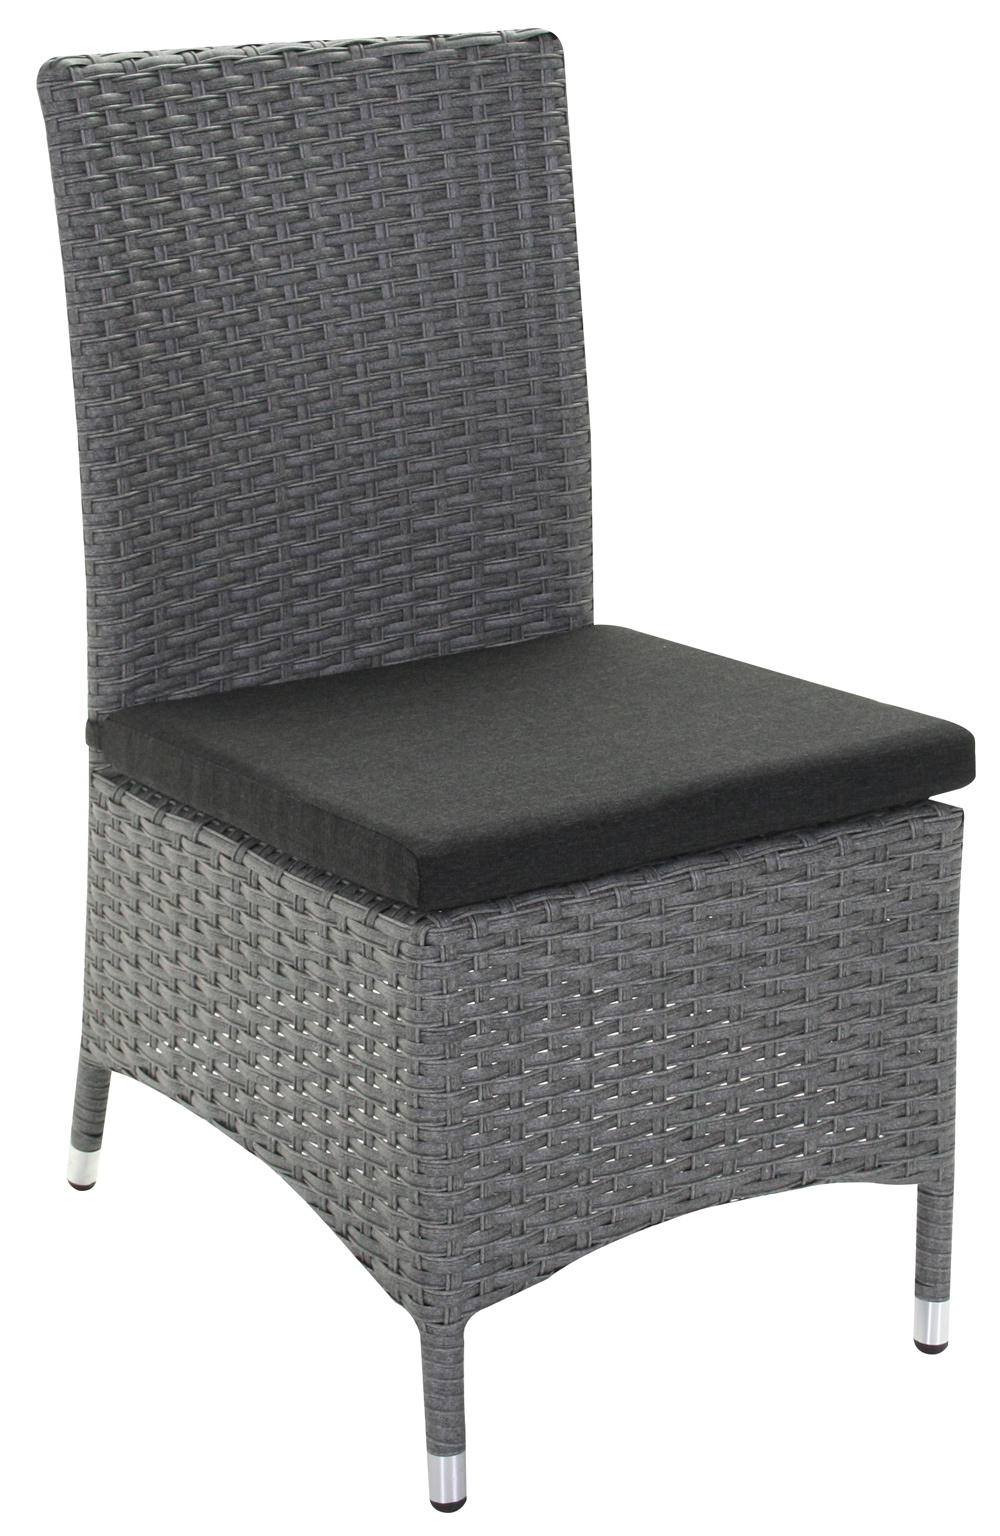 <BIG><B>Bella wicker stoel</B></BIG>